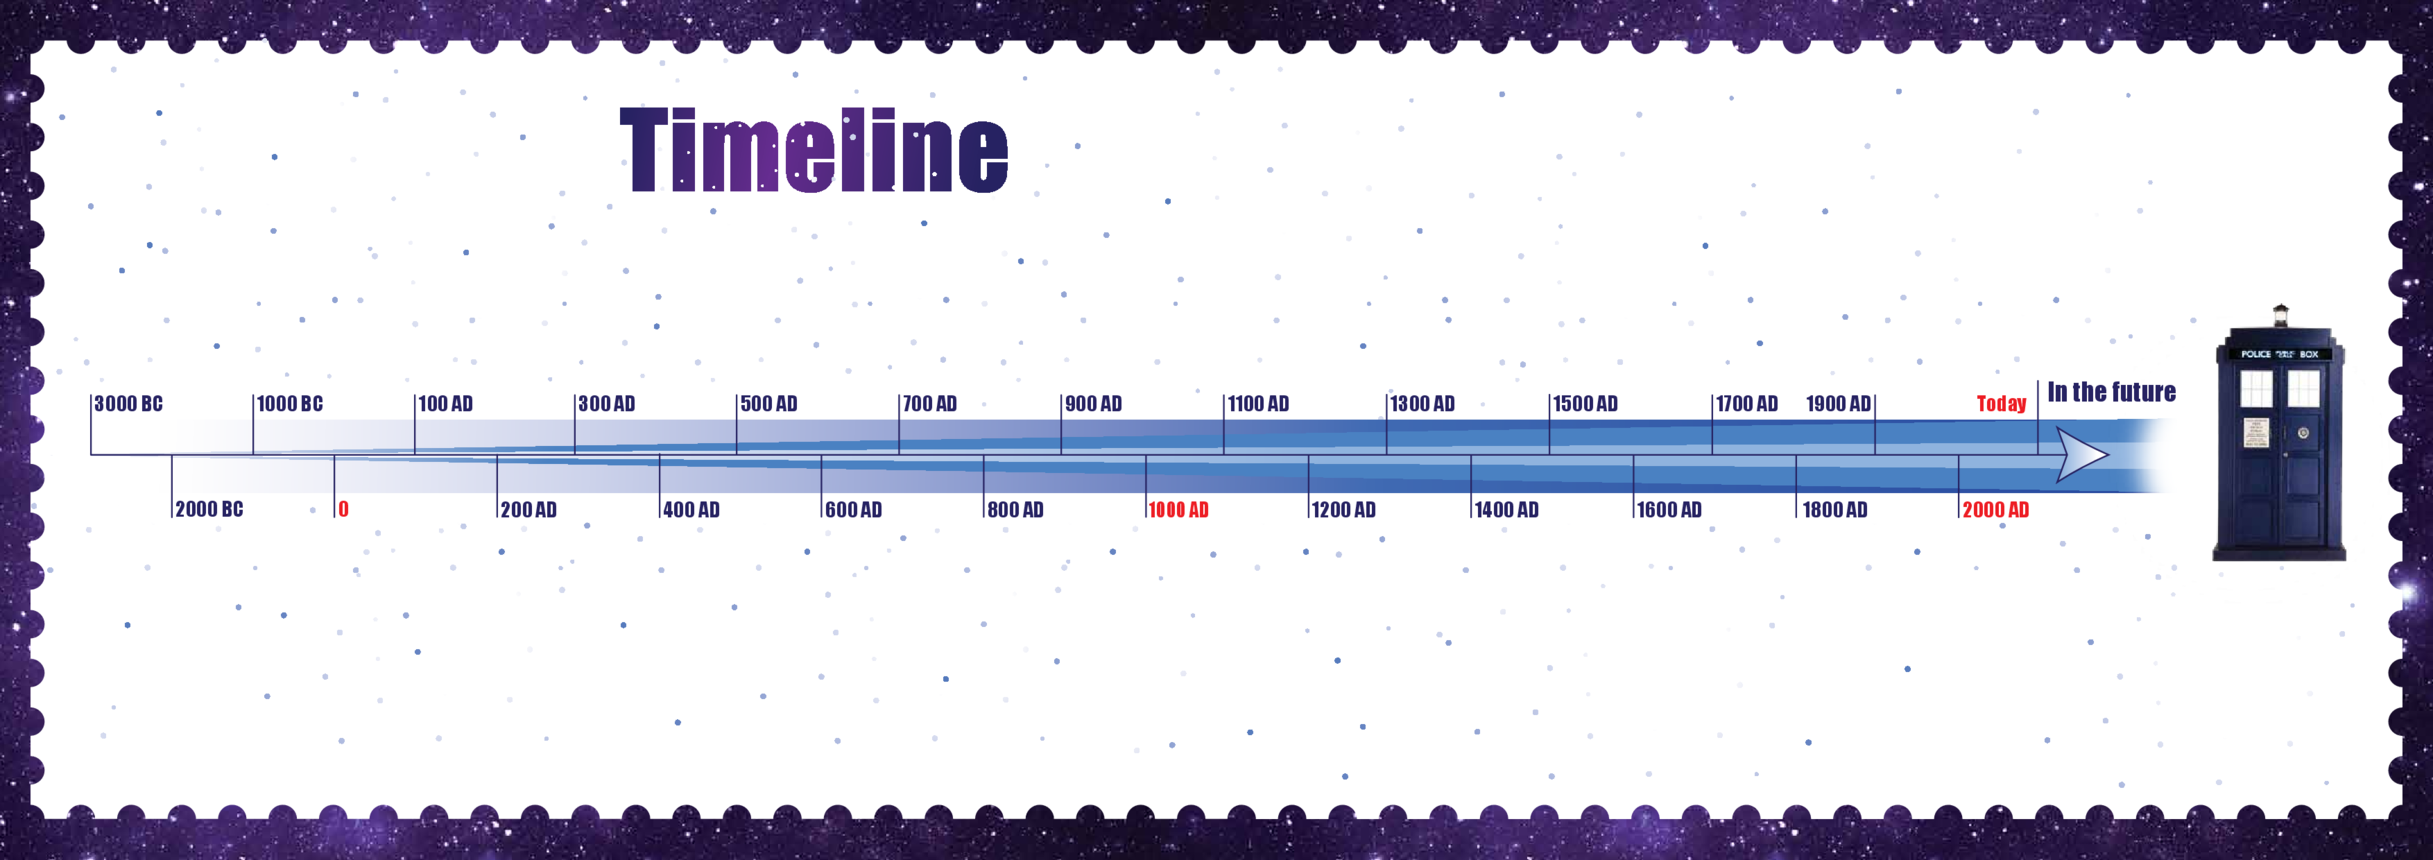 Primary 1) Time Travel Timeline A3 (Blank)